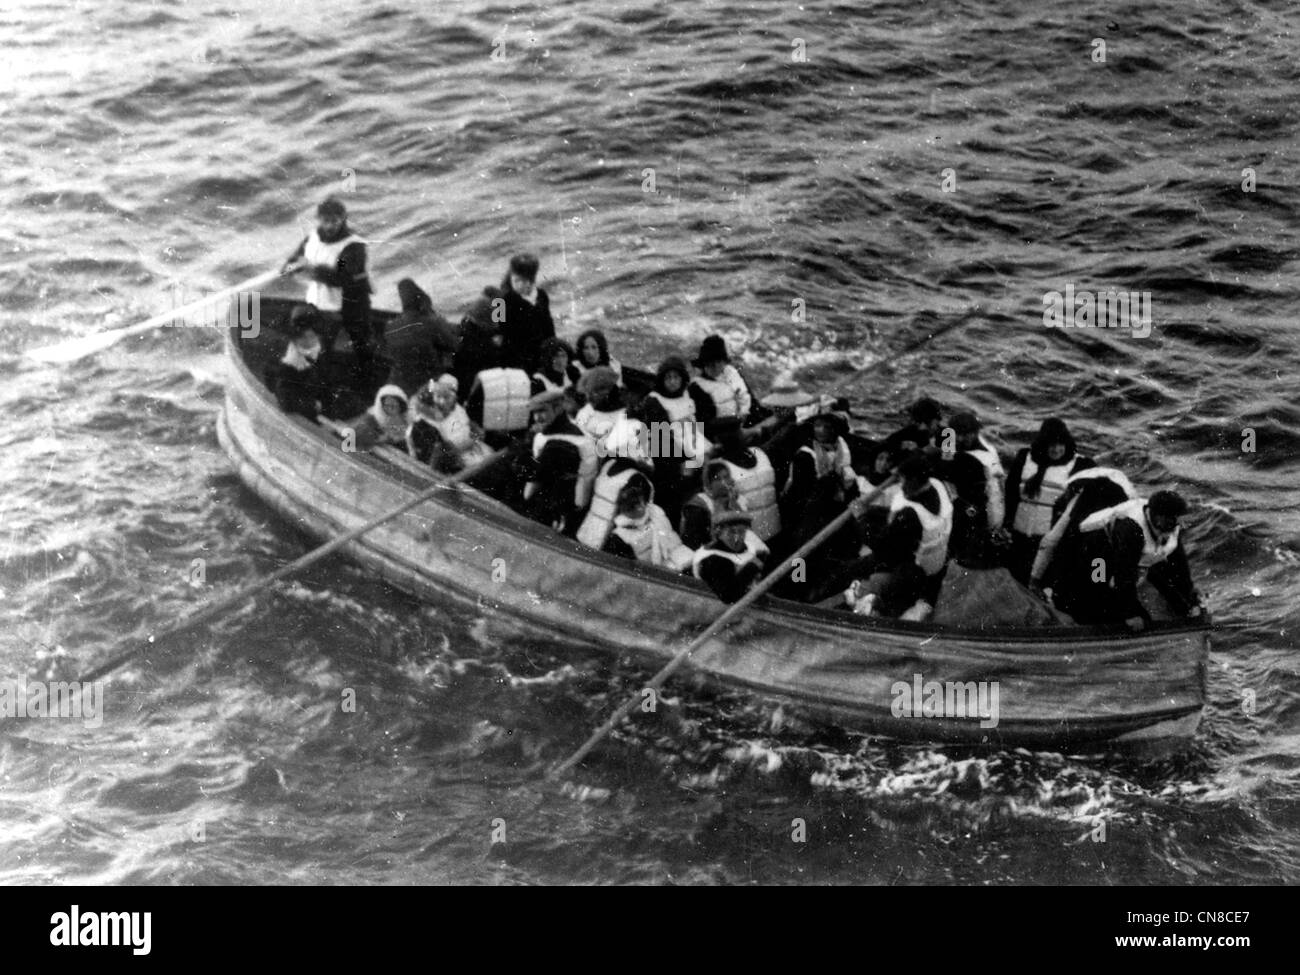 Titanic disaster, last lifeboat successfully launched from the Titanic - Stock Image